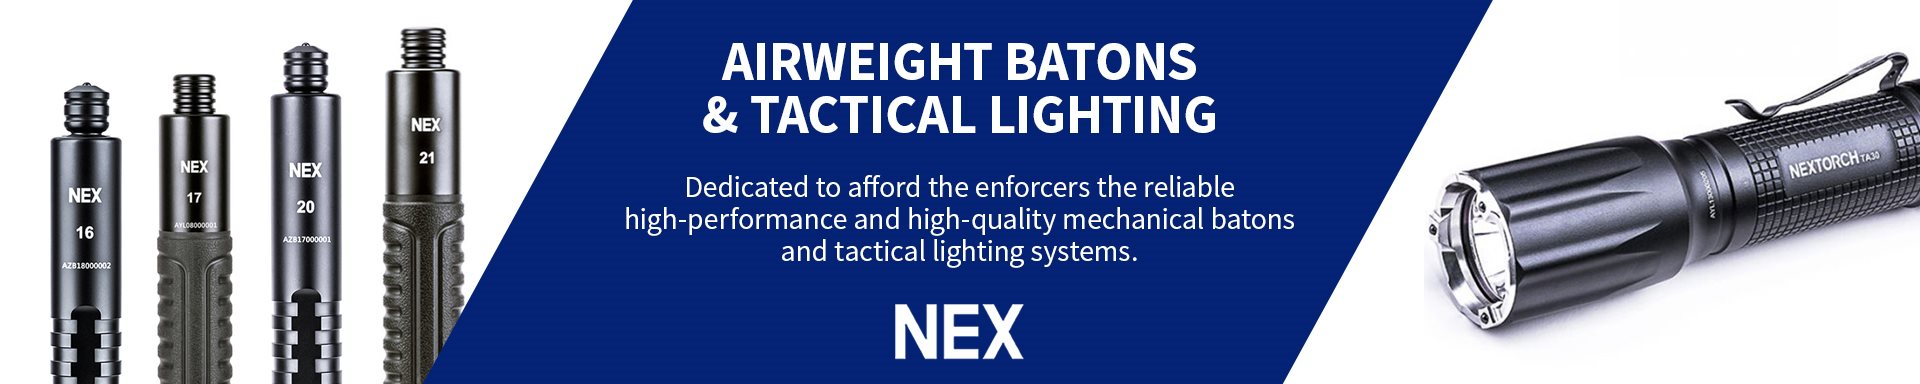 Nex - Batons and Lighting